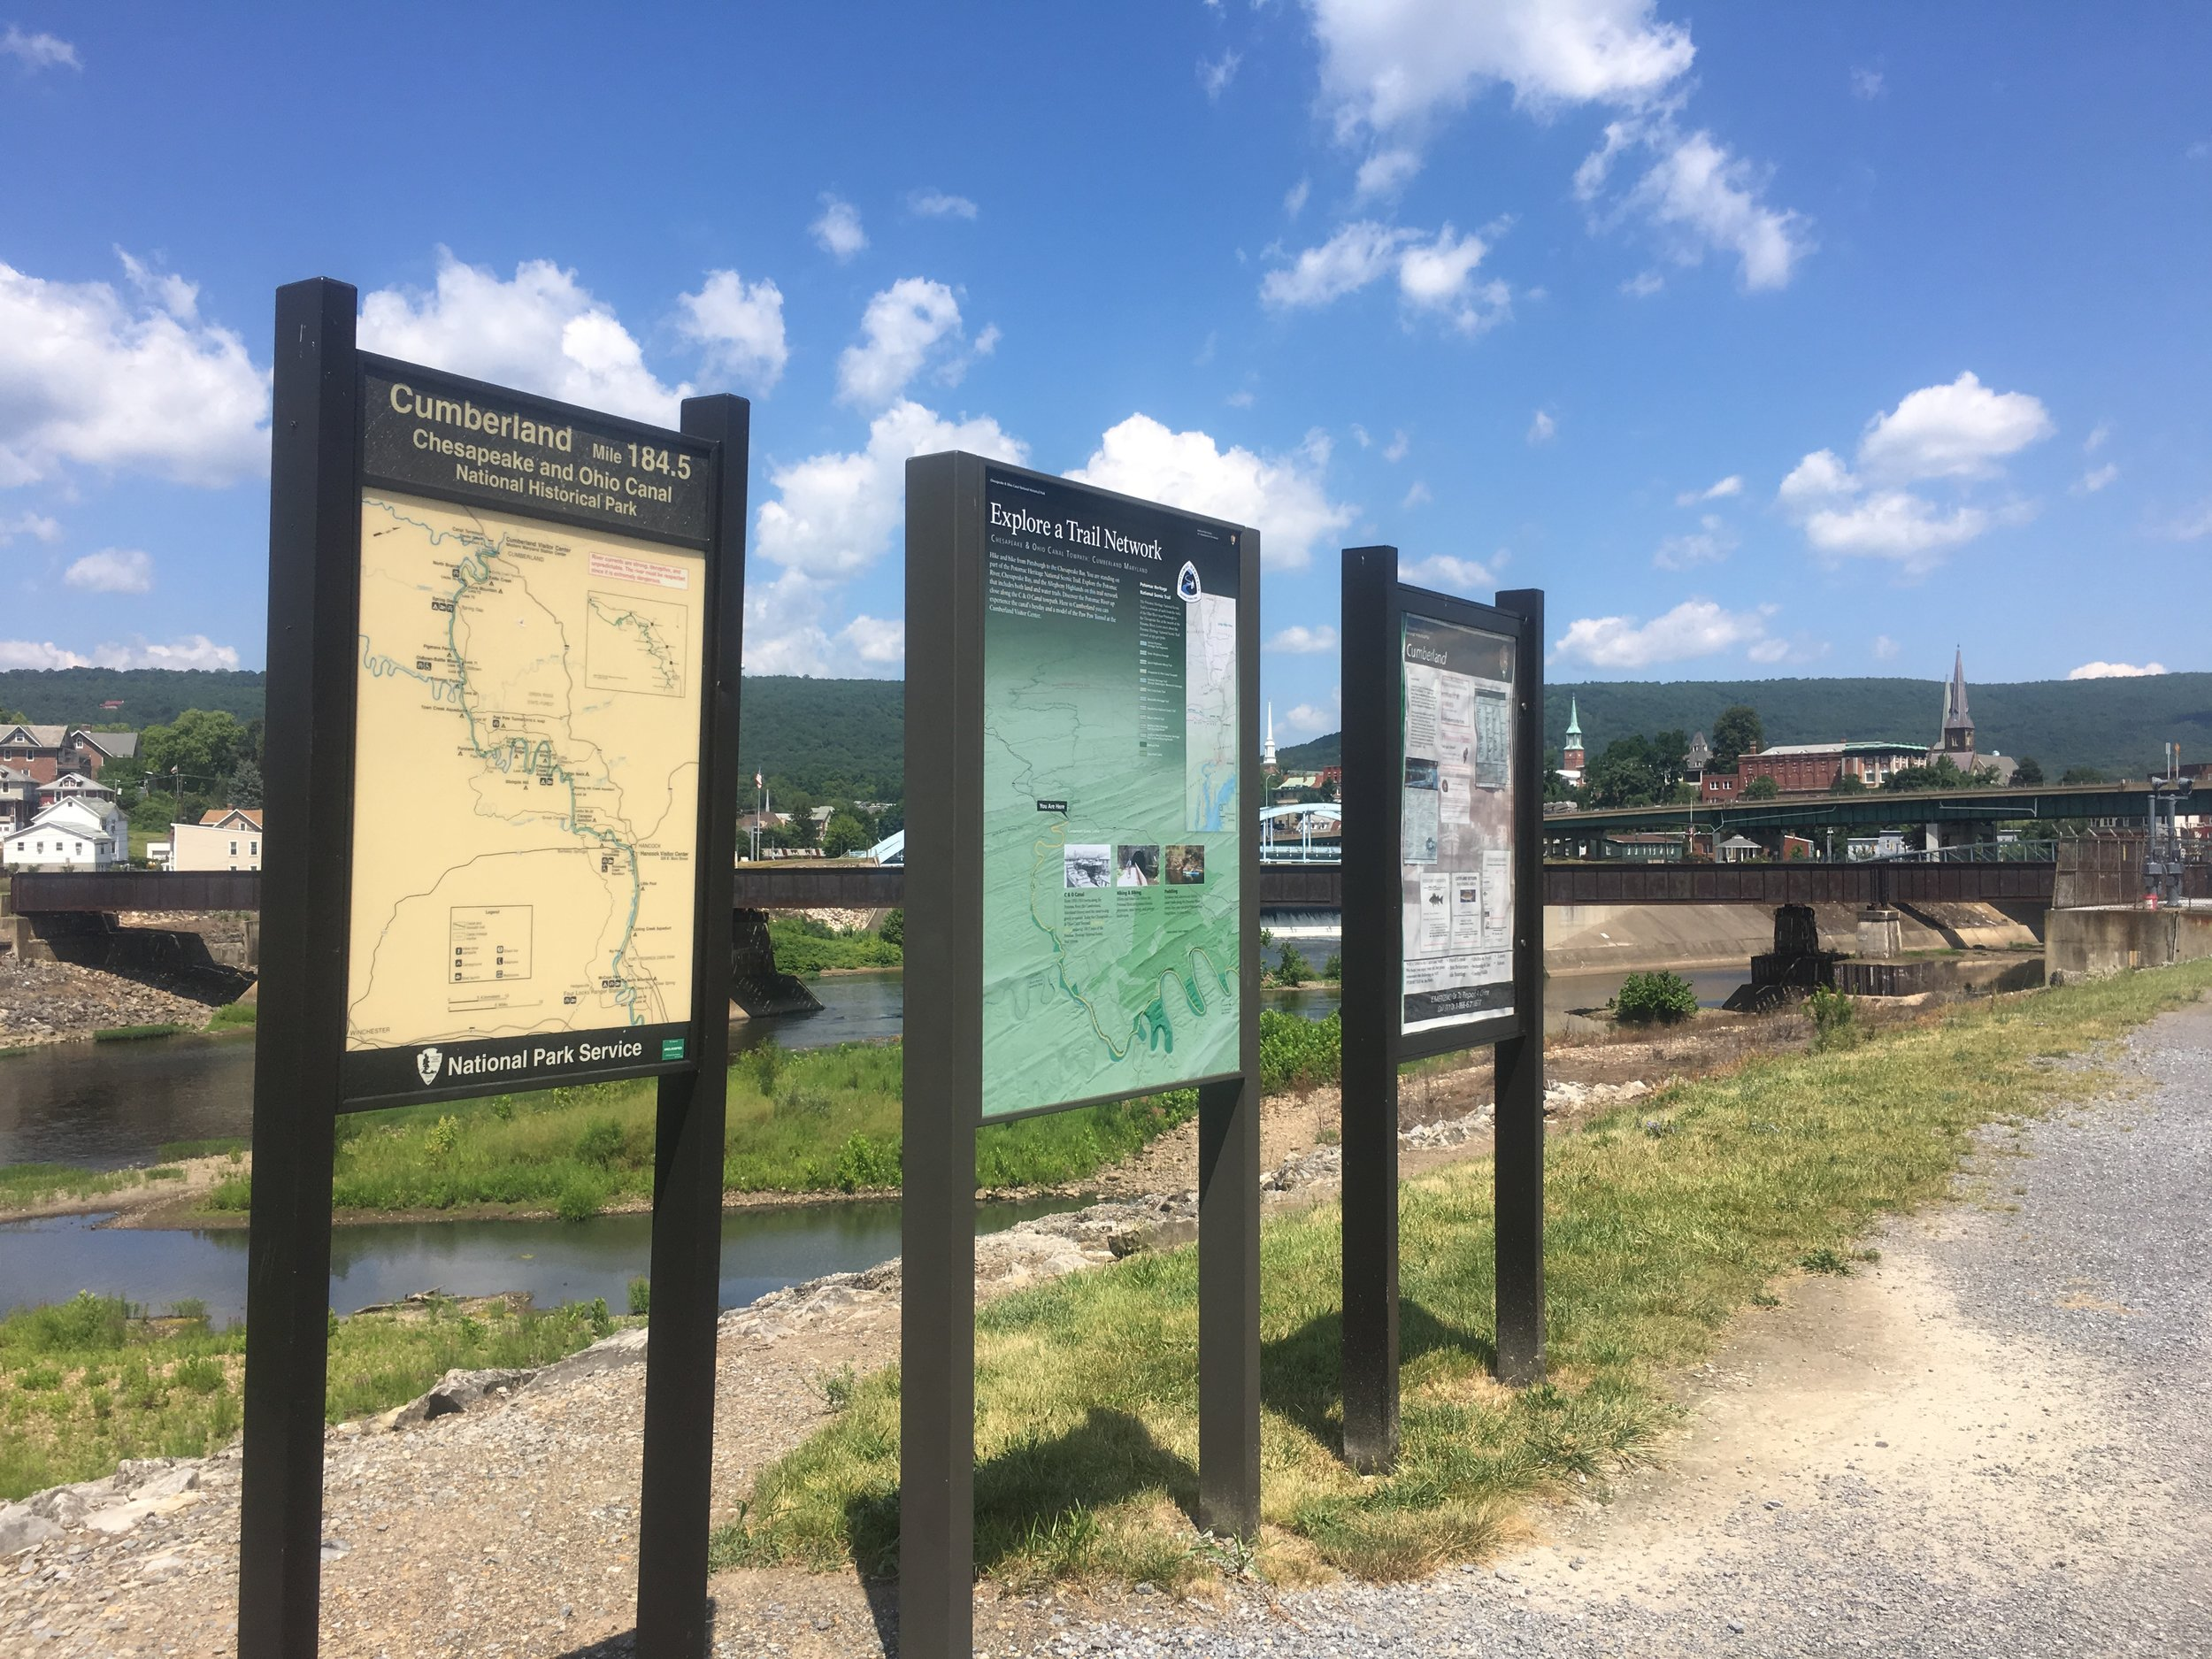 Cumberland, Maryland the end of the C&O Canal Trail and the beginning of the Great Allegheny Passage